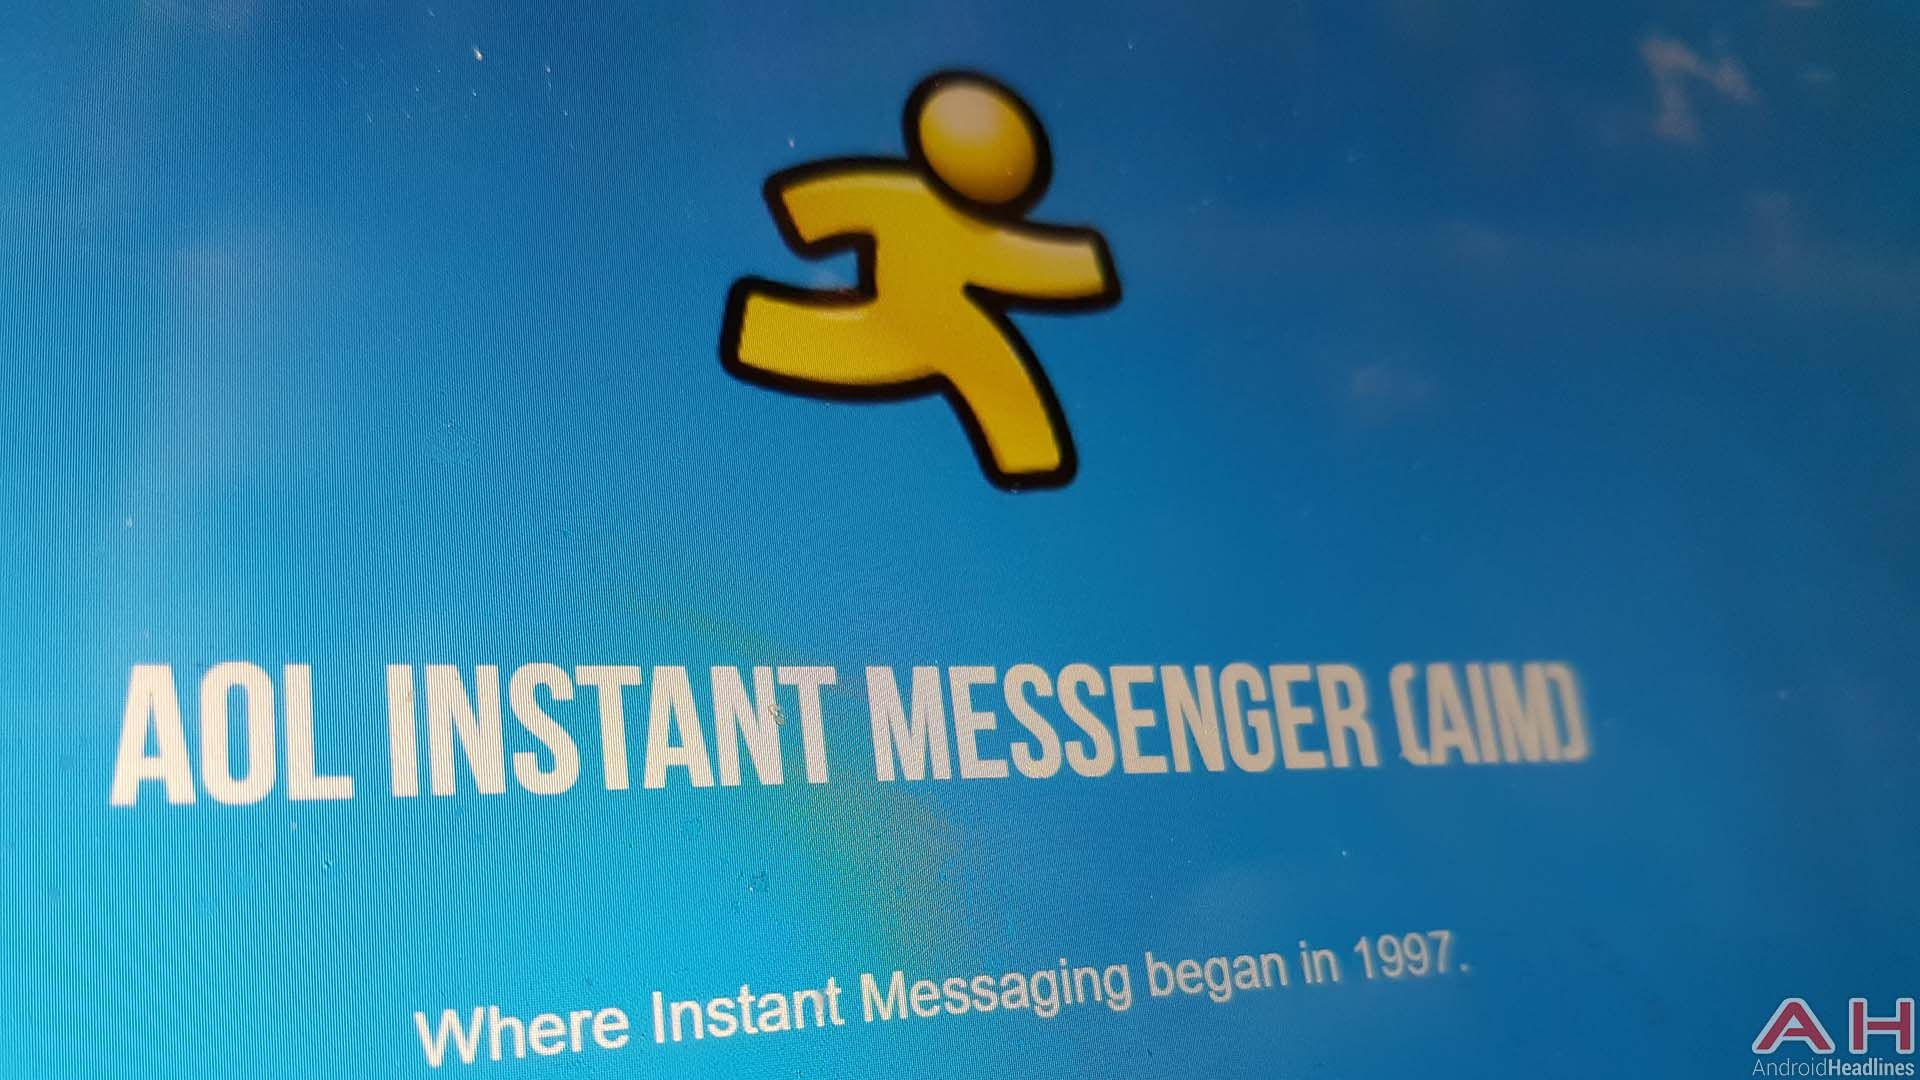 Aol instant messenger being discontinued on december 15